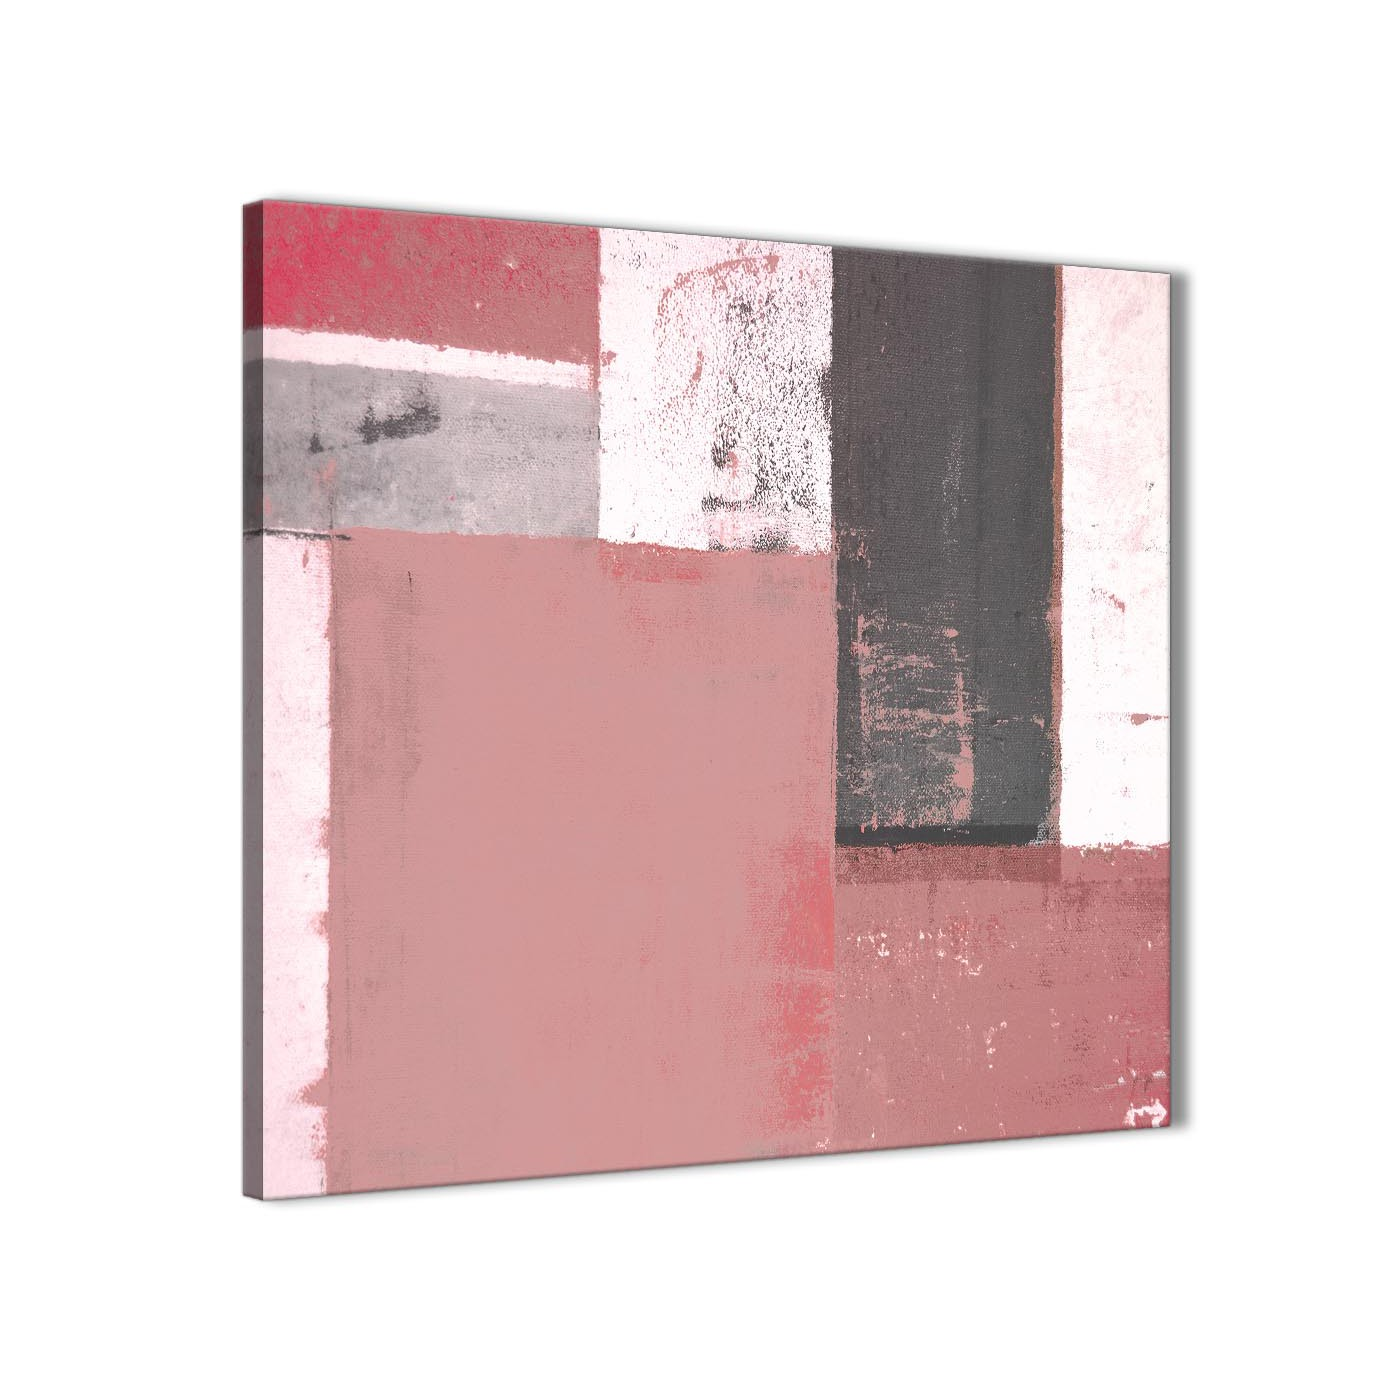 Blush pink grey abstract painting canvas wall art print modern 64cm square 1s334m